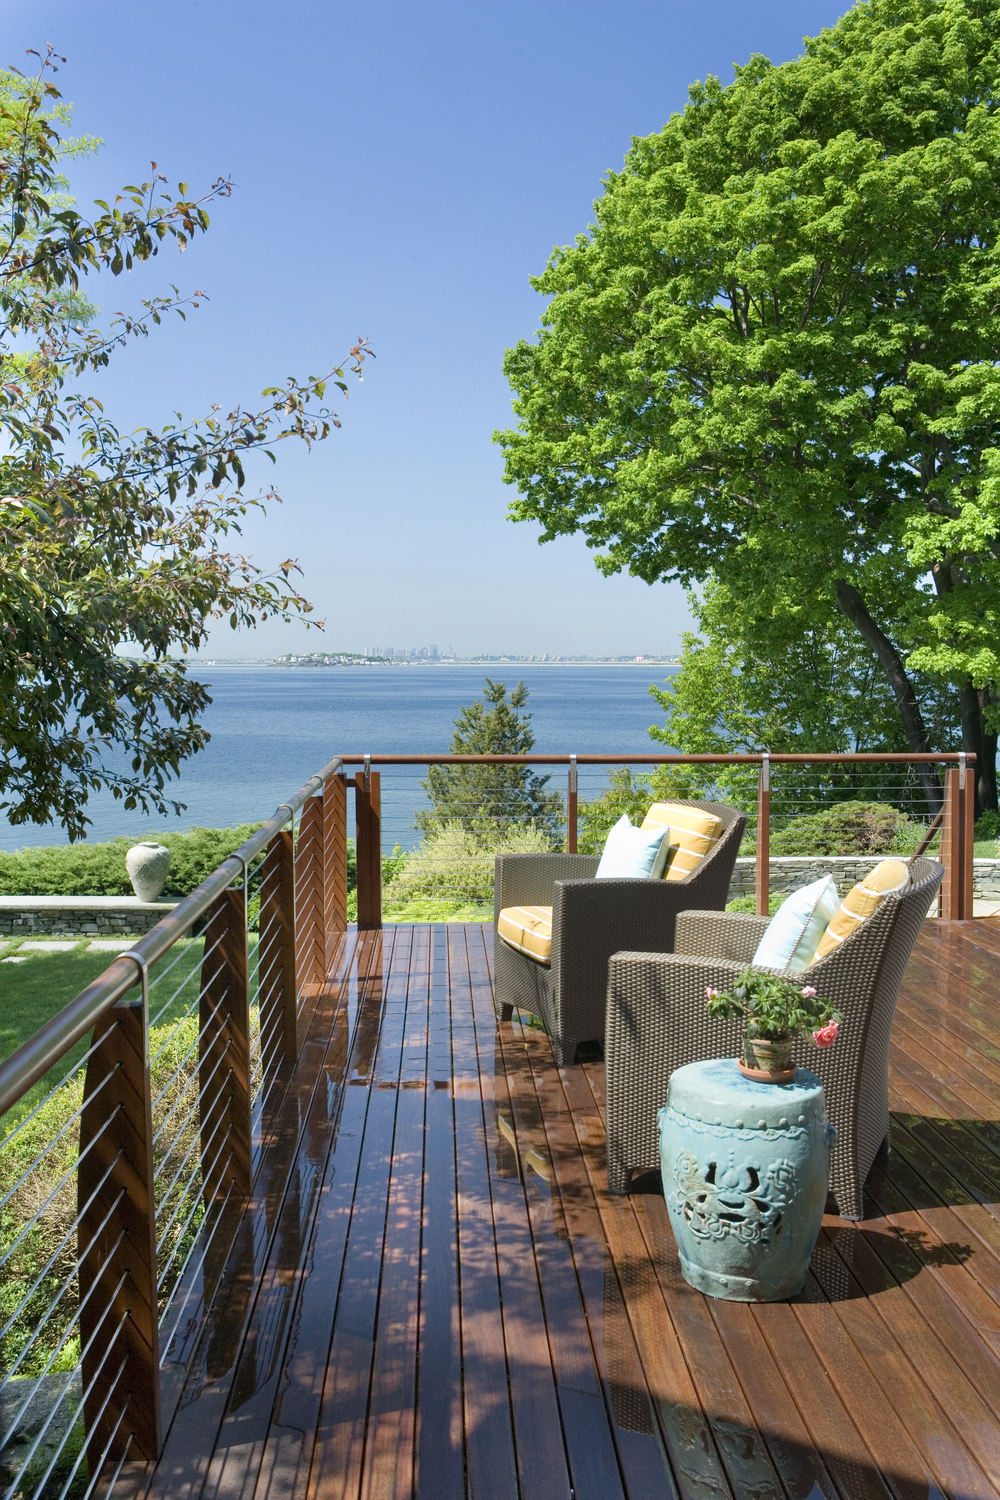 Paul Fiore Schwartz 5 07 deck looking over water.jpg